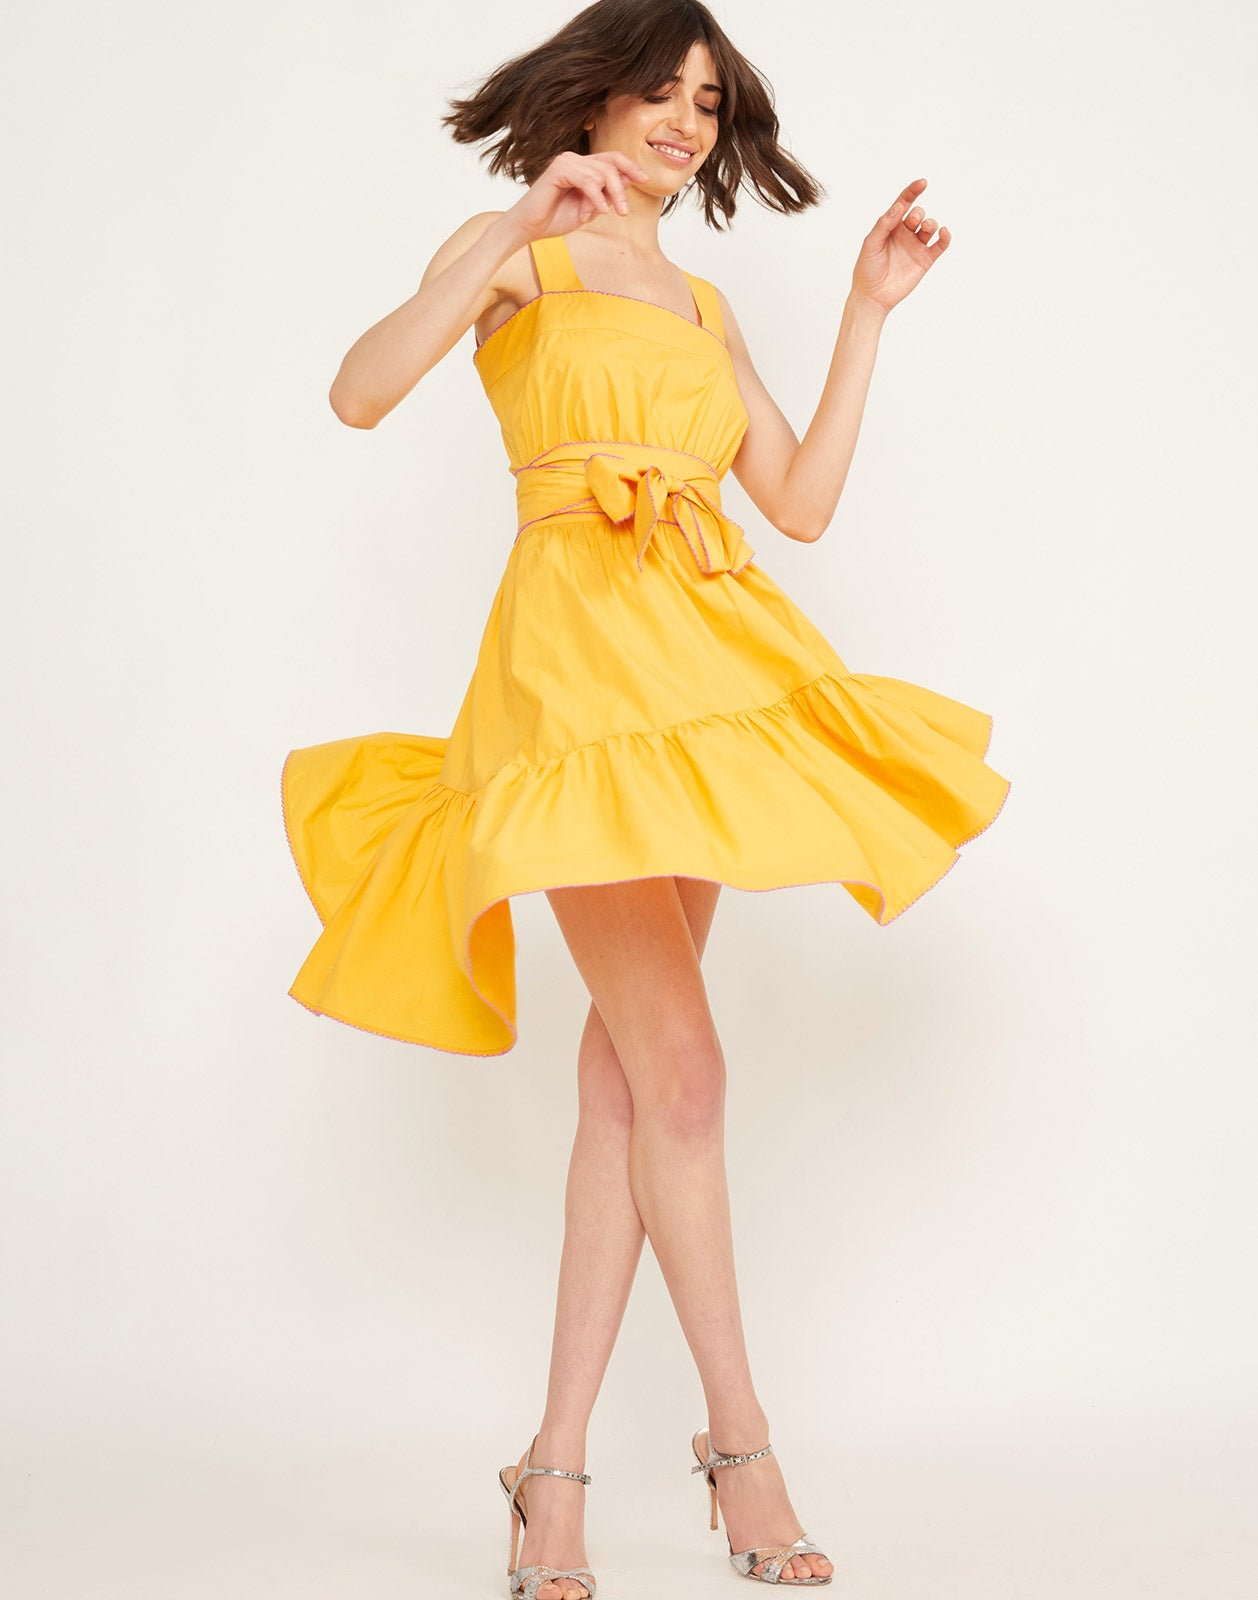 Twirling view of the Dahlia Sundress